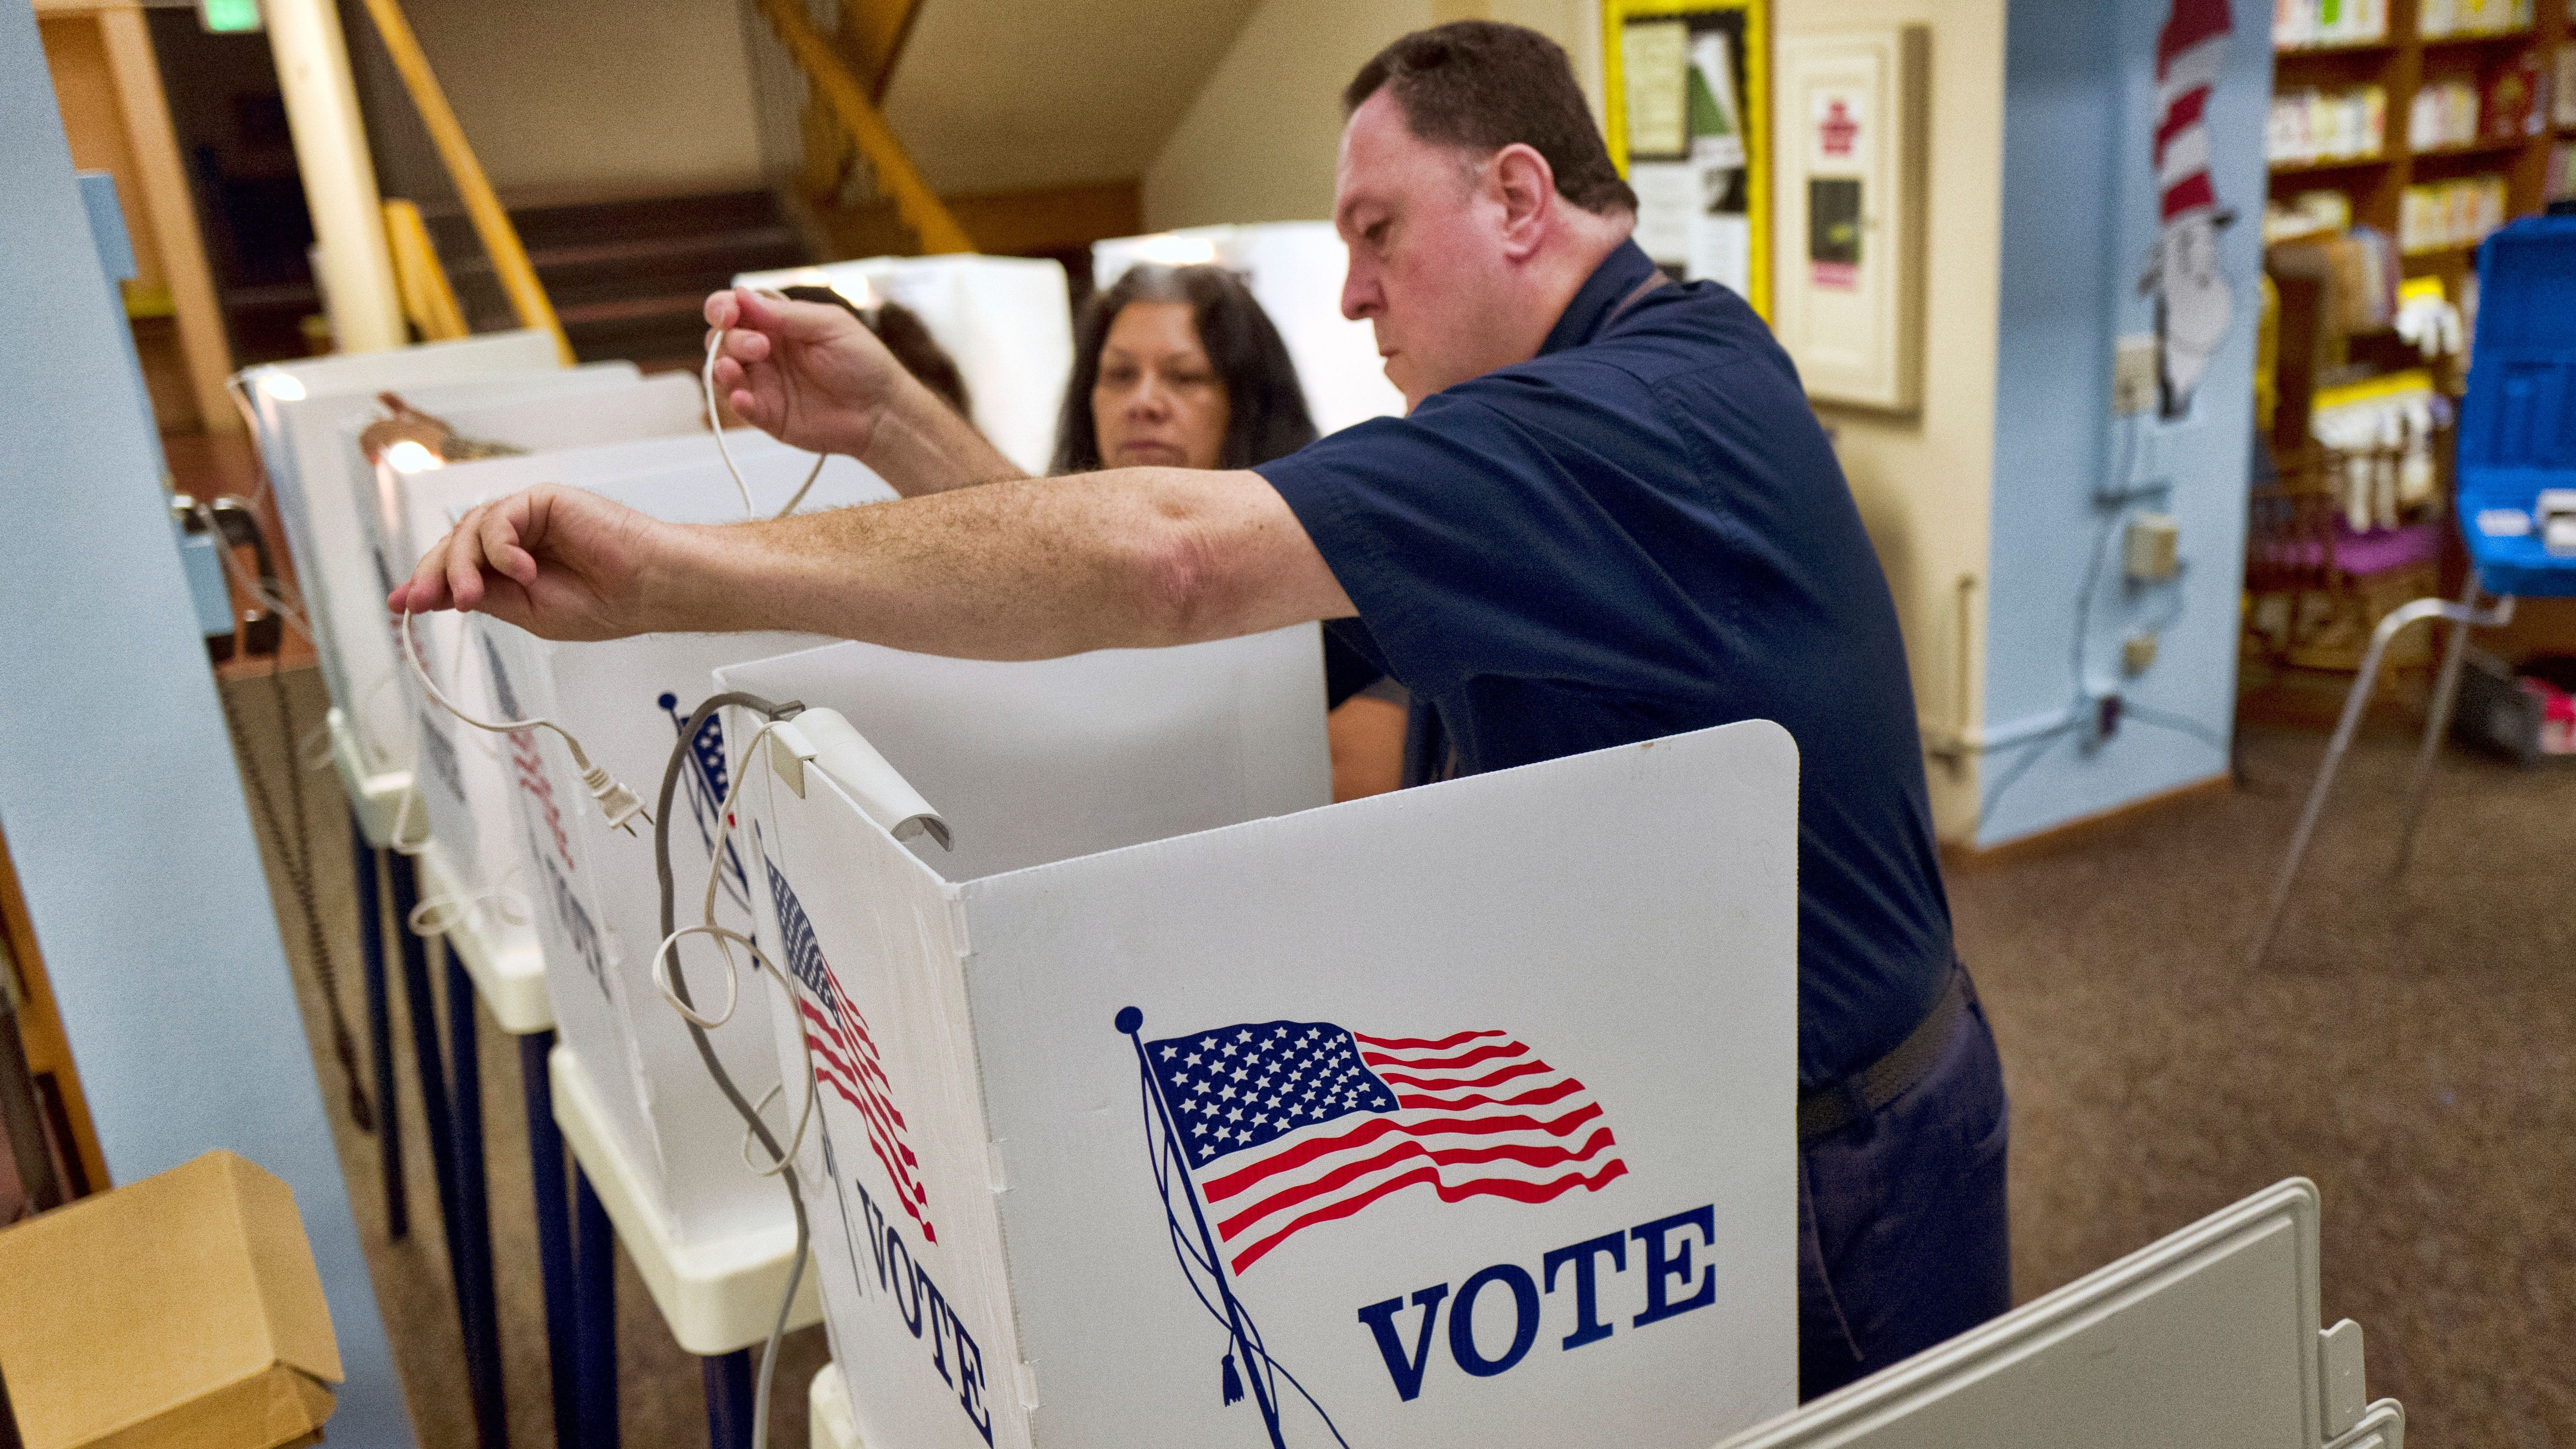 Tuesday election day in California